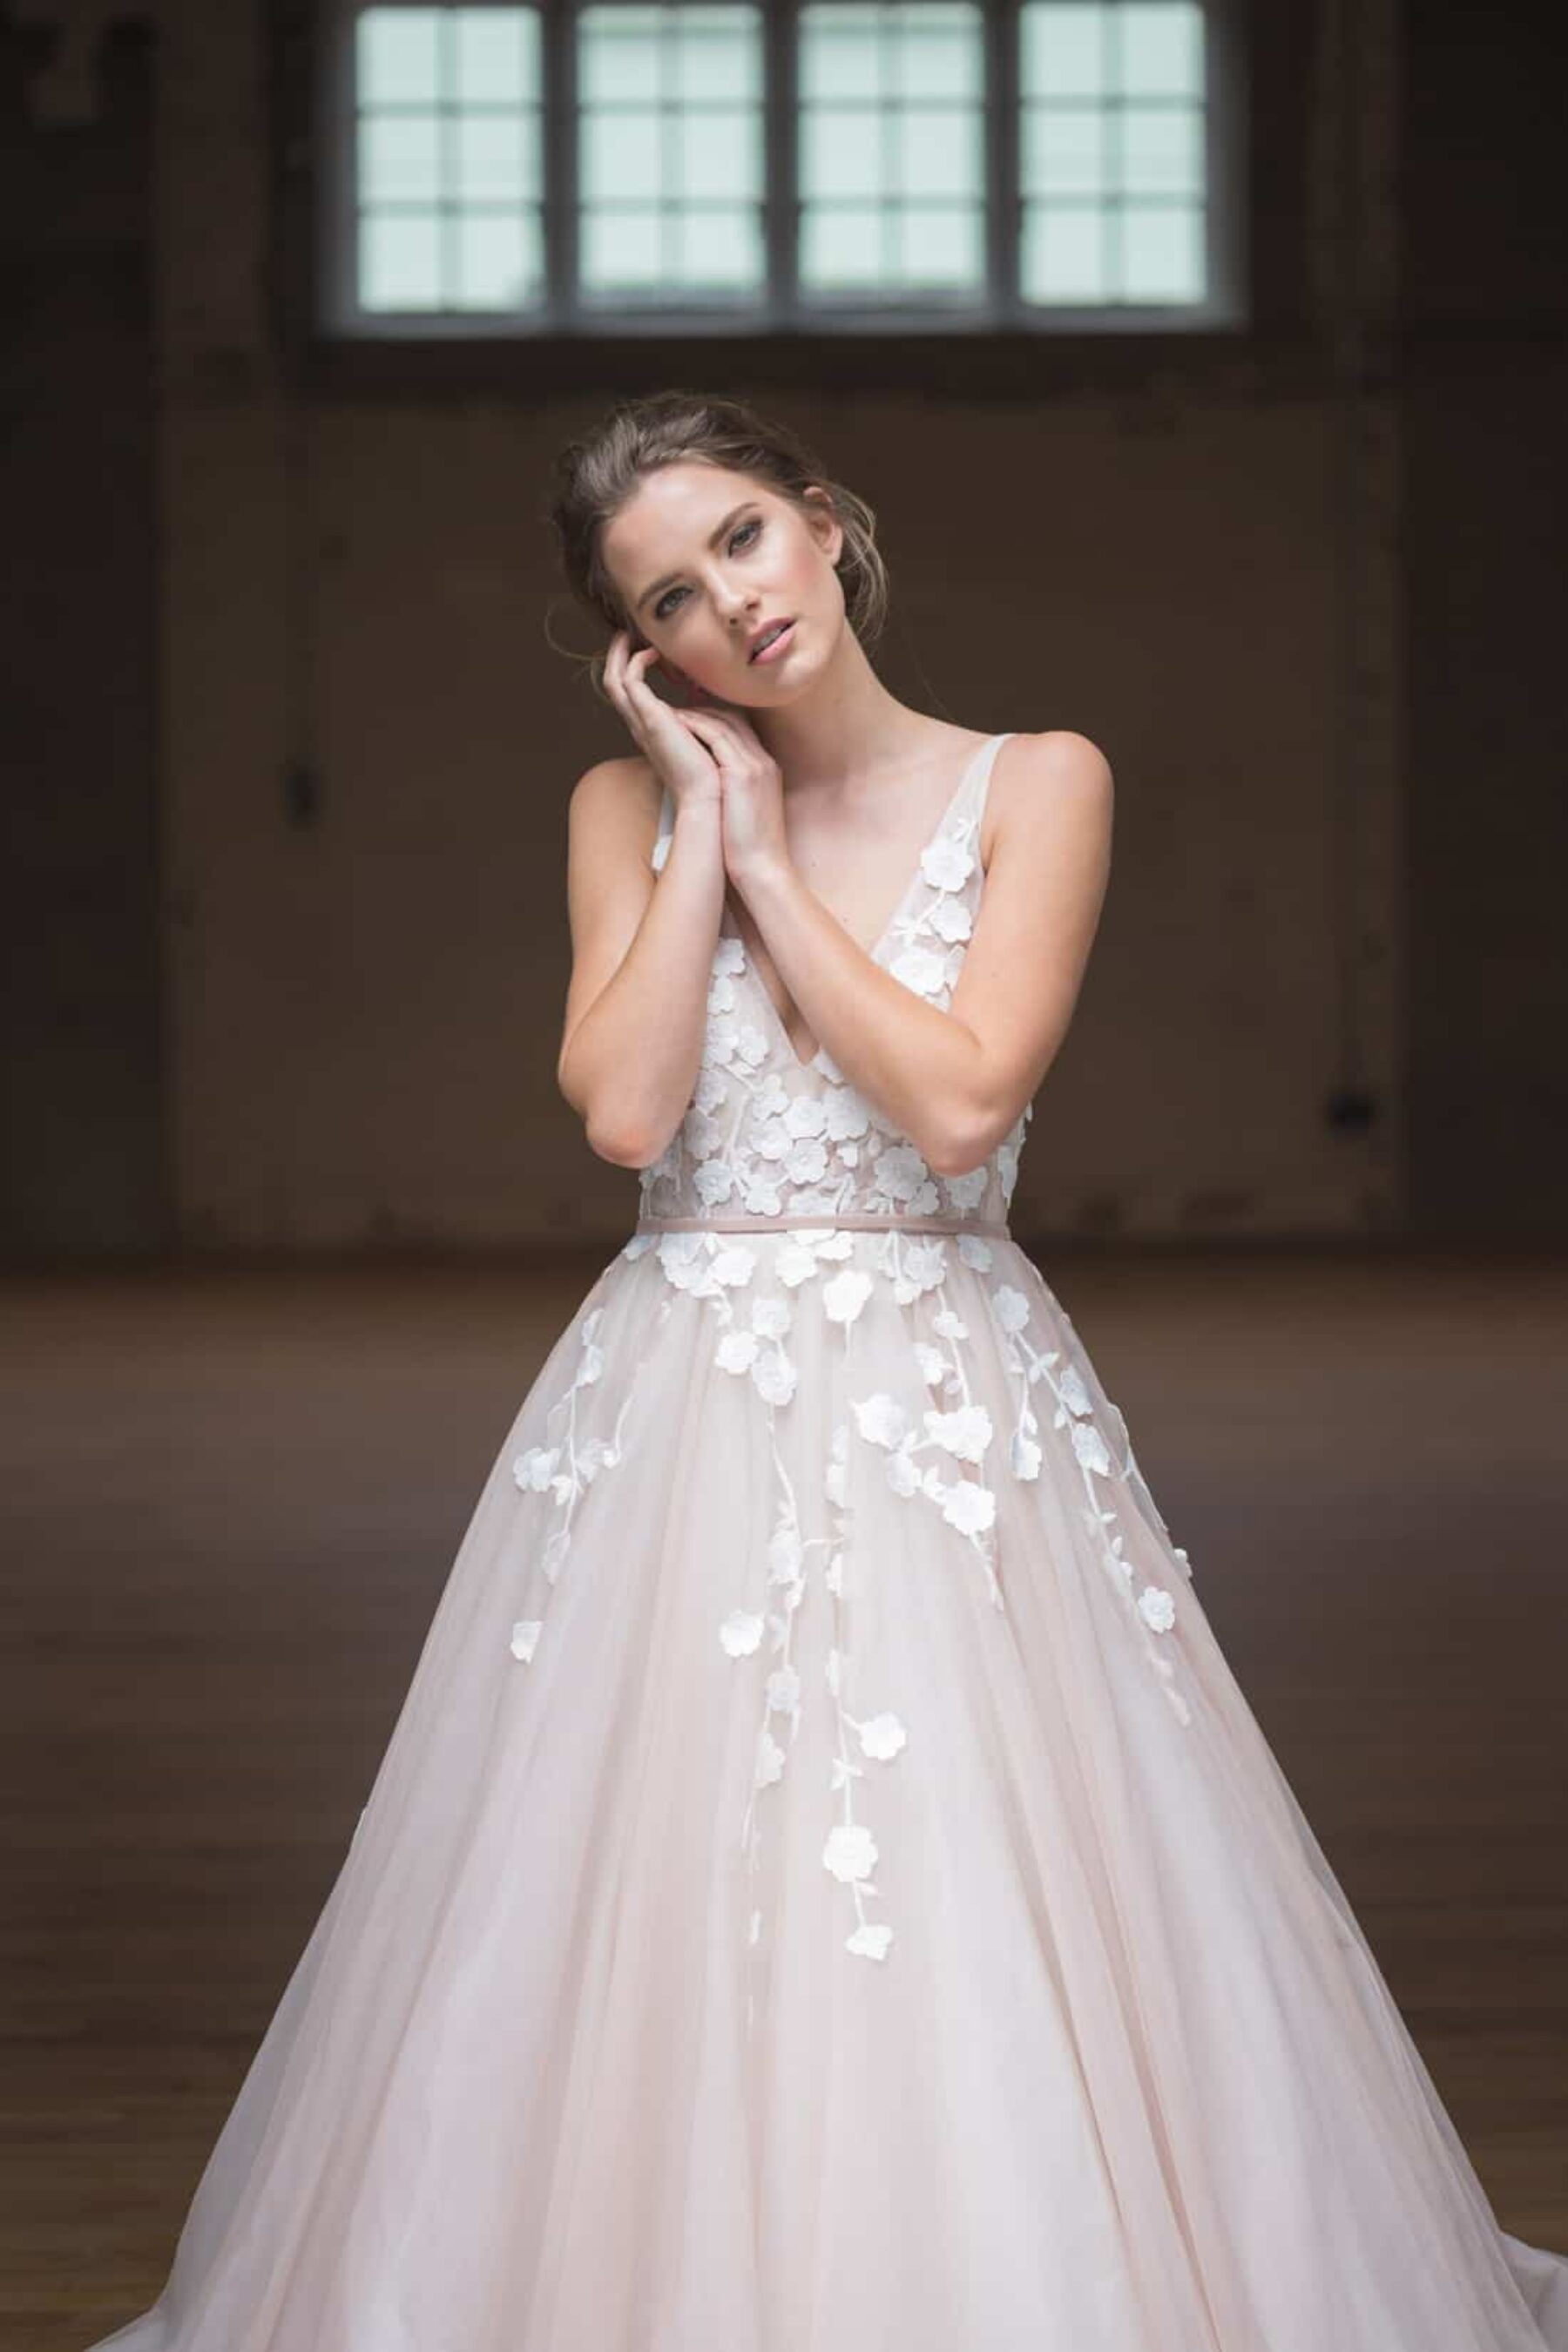 blush tulle wedding dress with floral applique